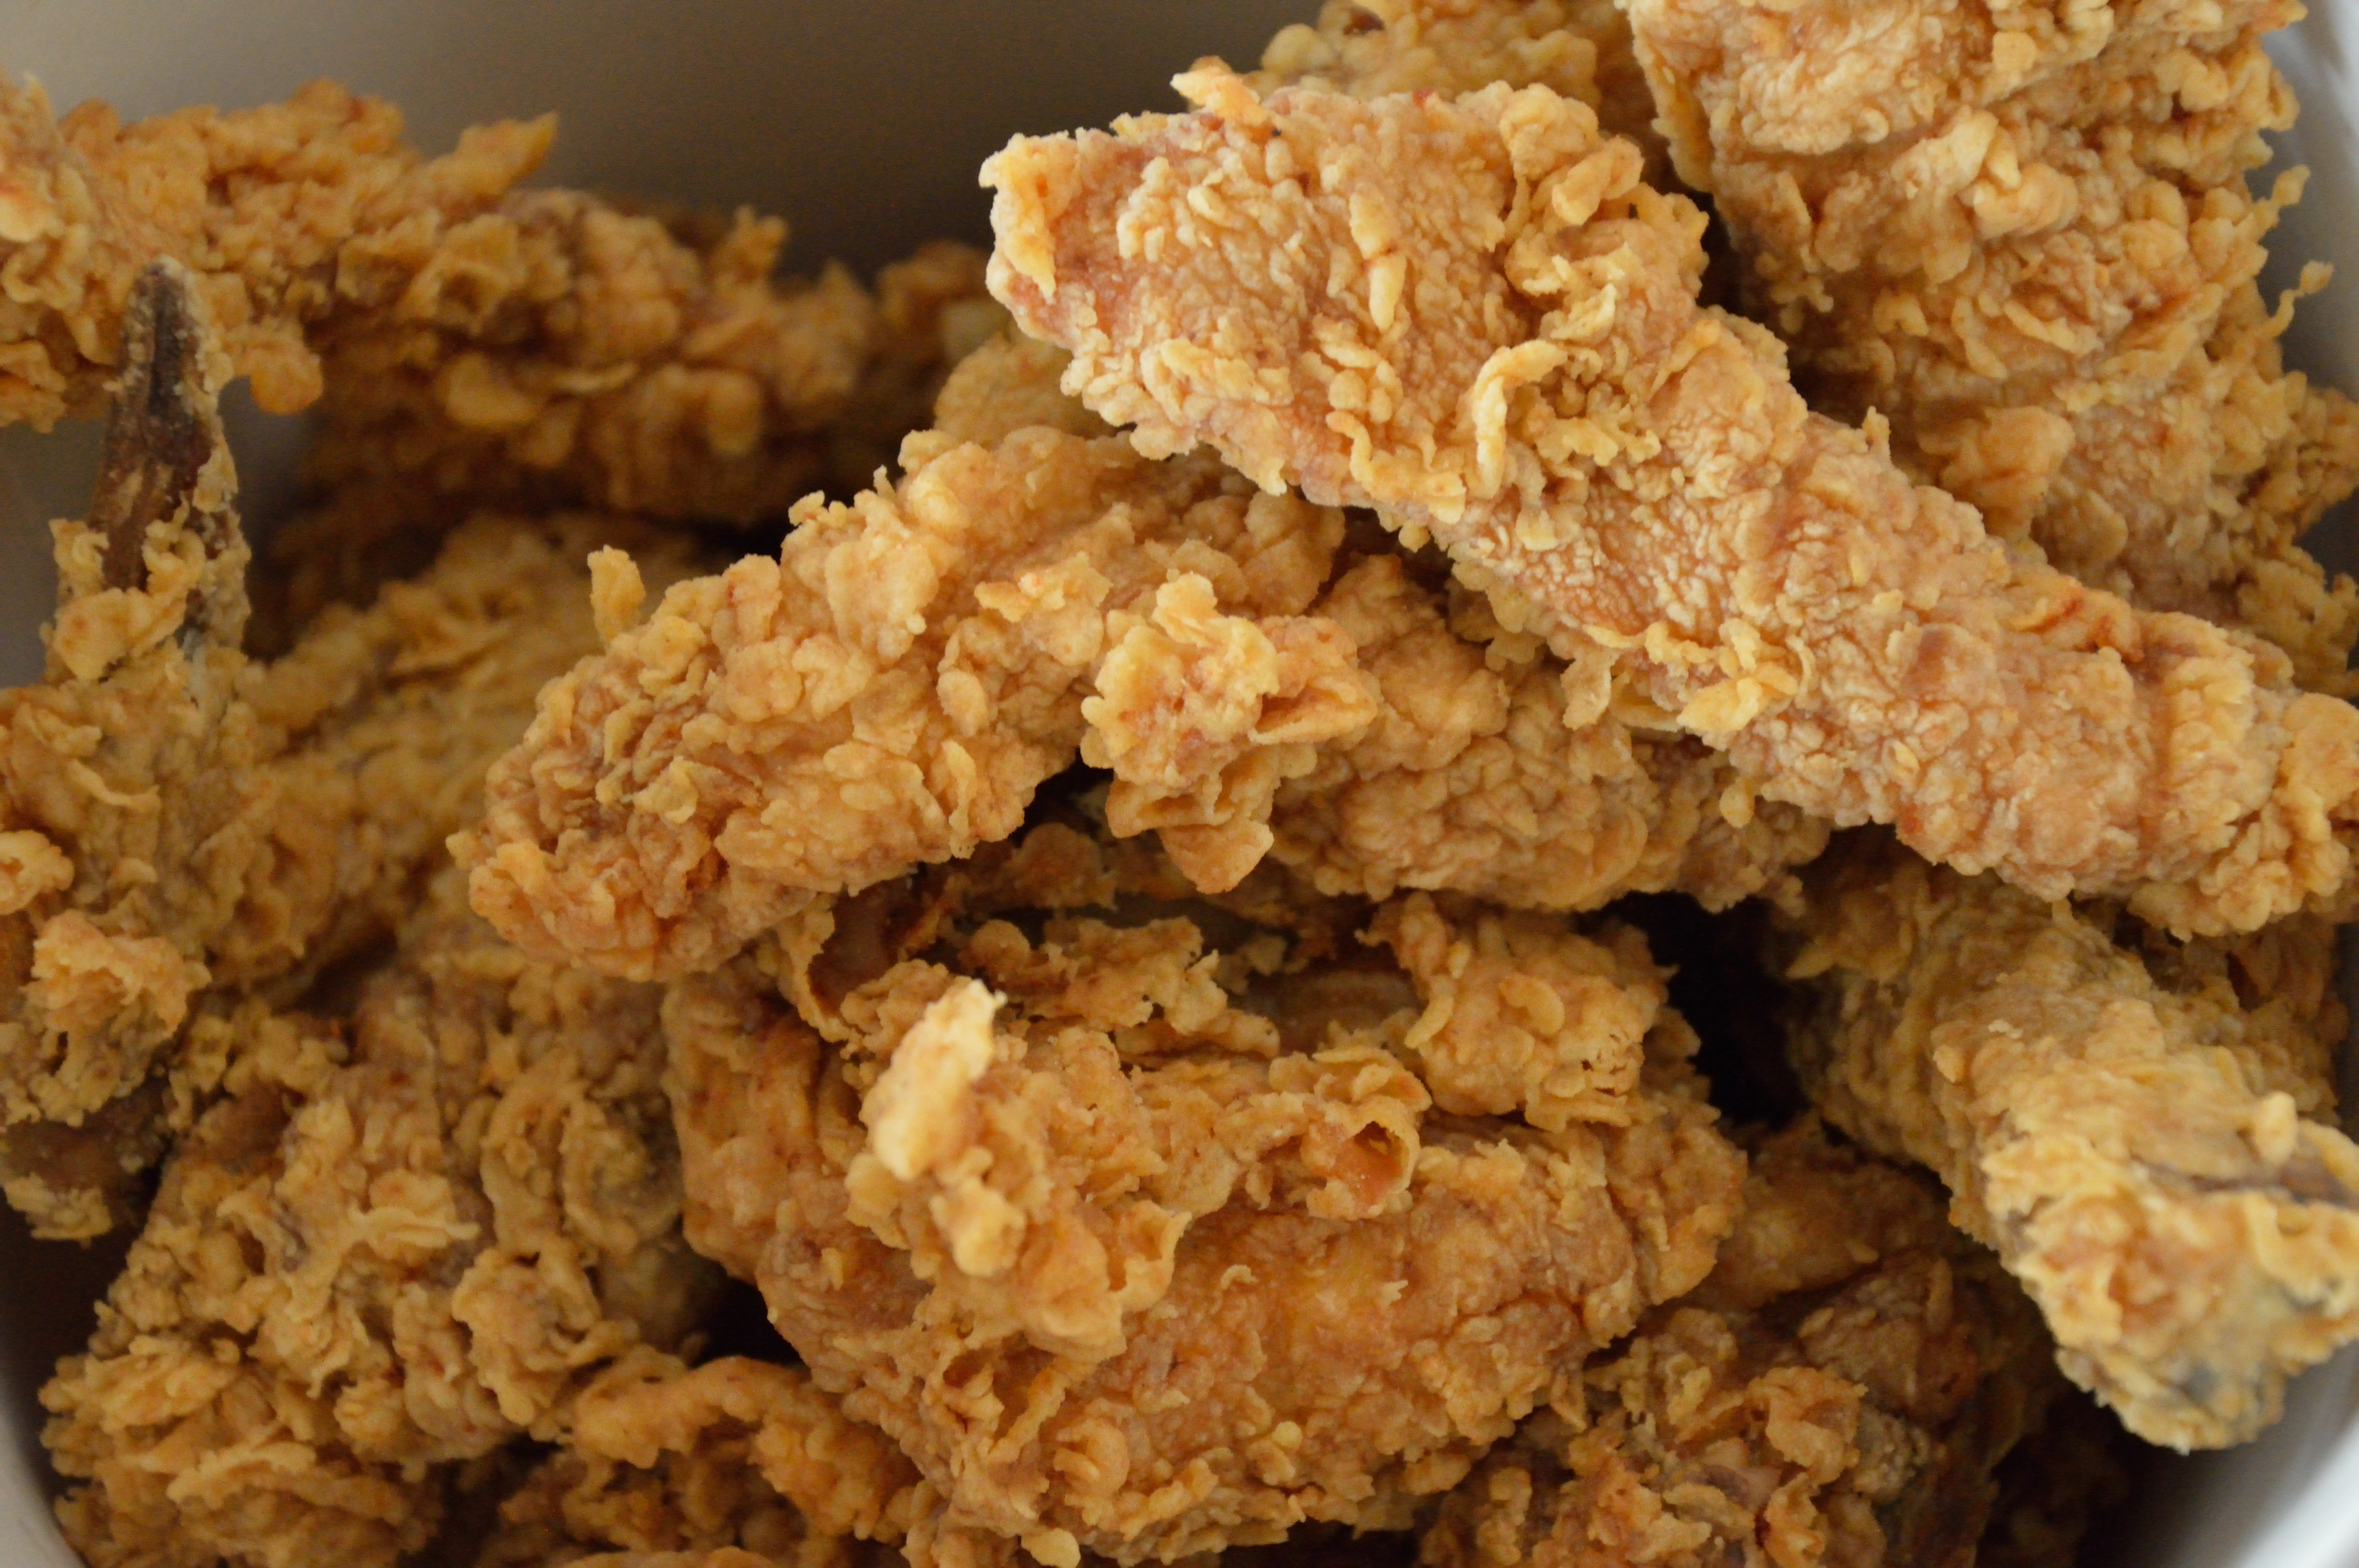 Fried Chicken Images | Crazy Gallery